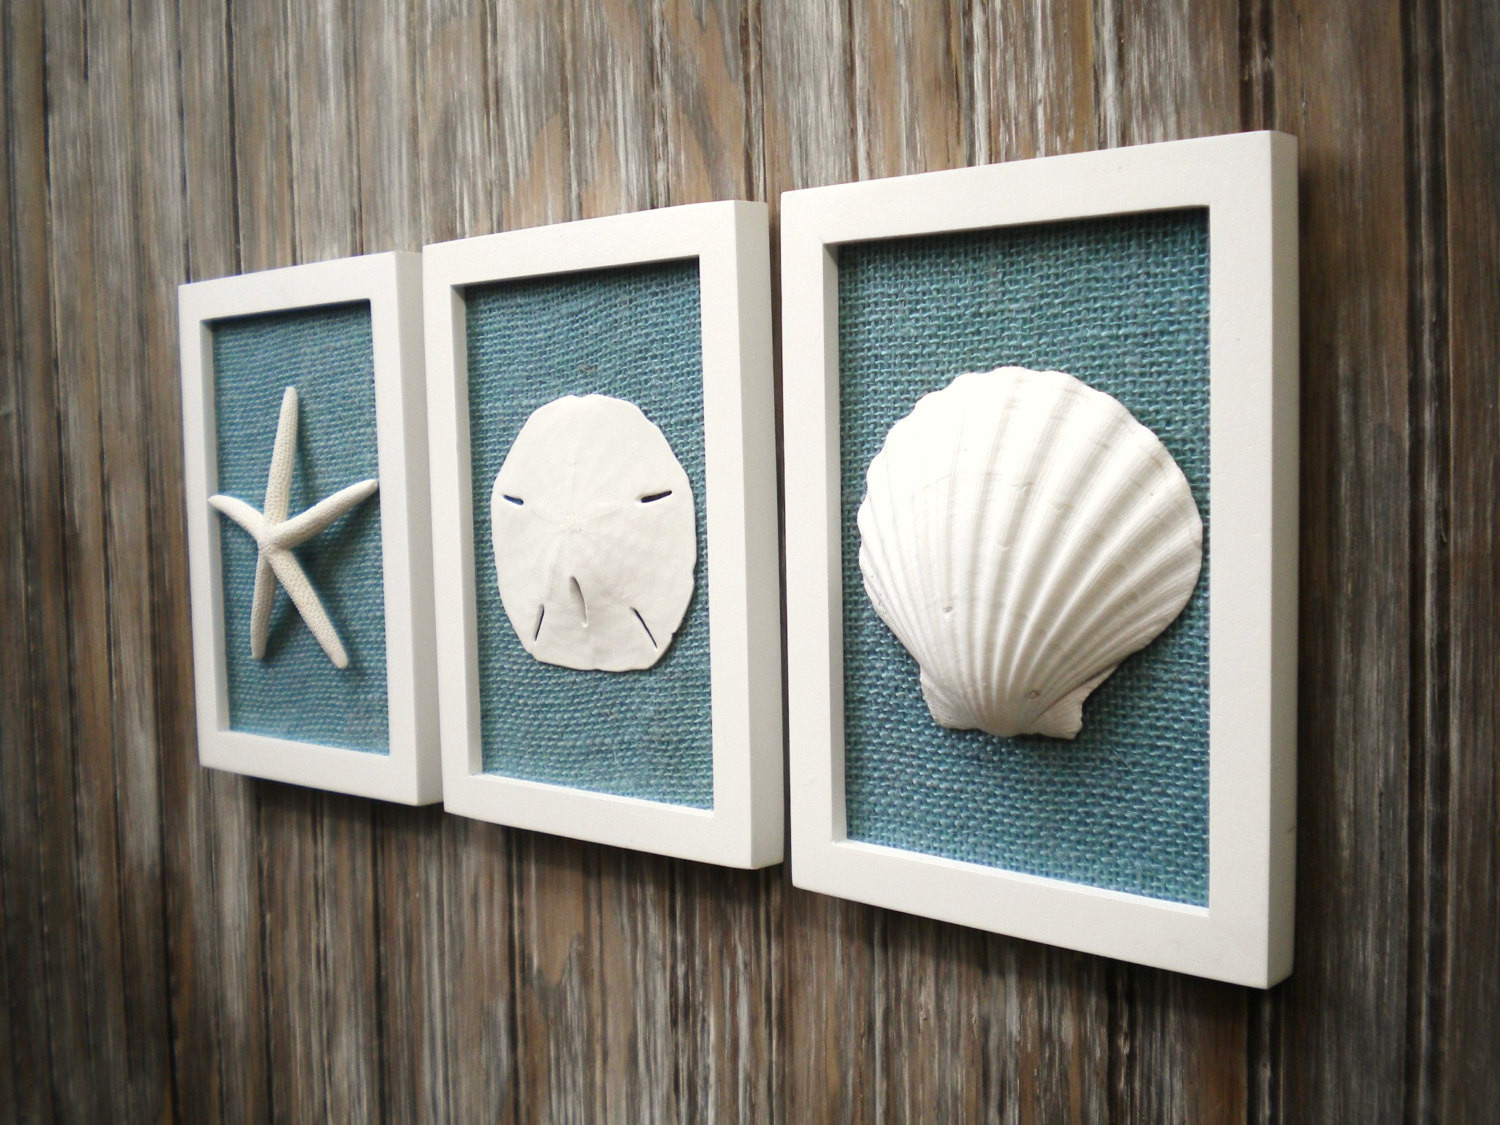 Best ideas about Beach Wall Art . Save or Pin Charming Beach Wall Decor for Bathroom Now.